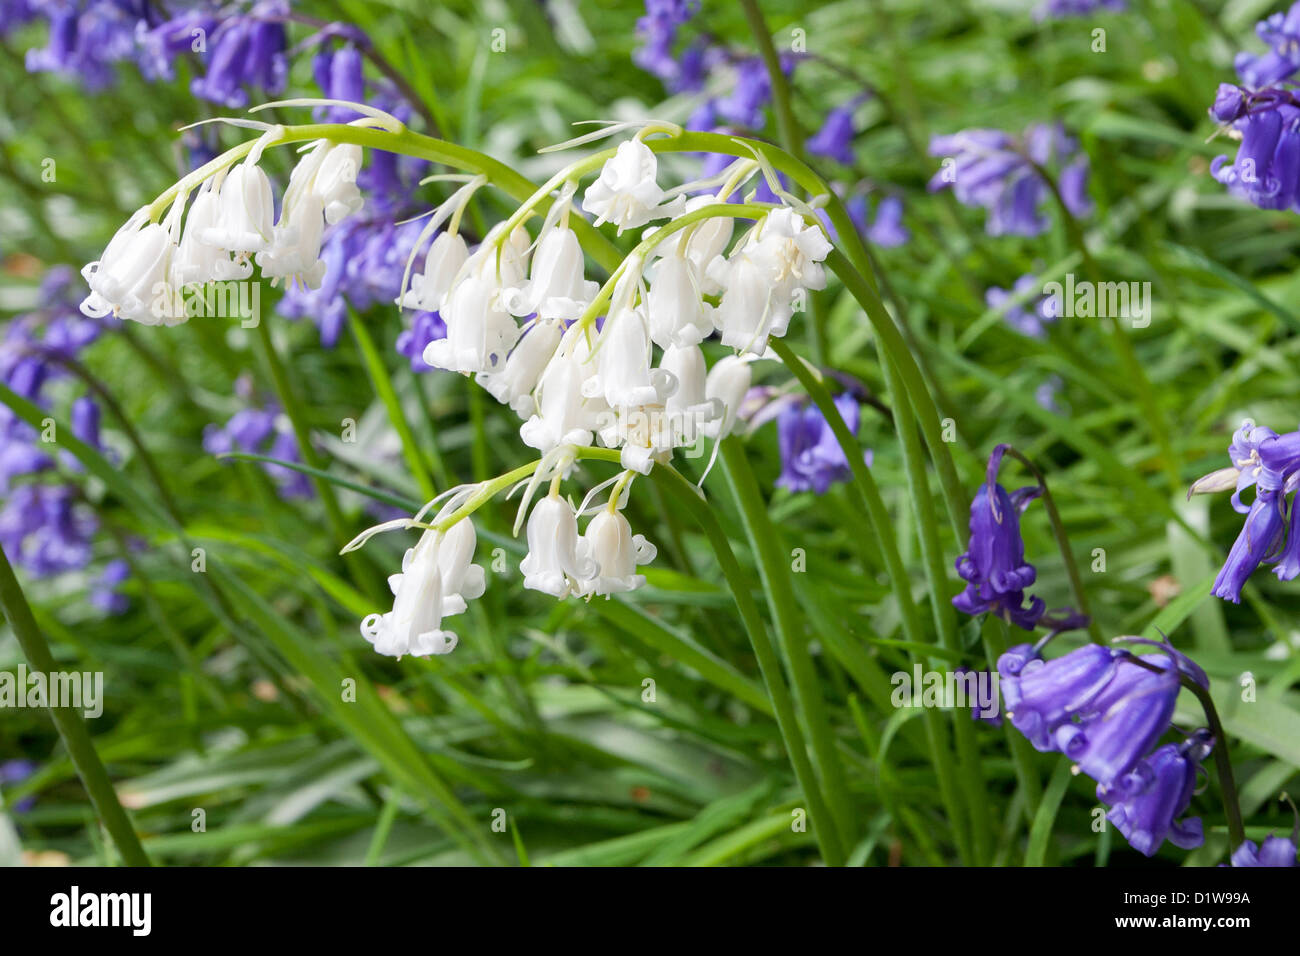 White bluebells stock photos white bluebells stock images alamy blue and white bluebells flowering in may near scarborough north yorkshire england mightylinksfo